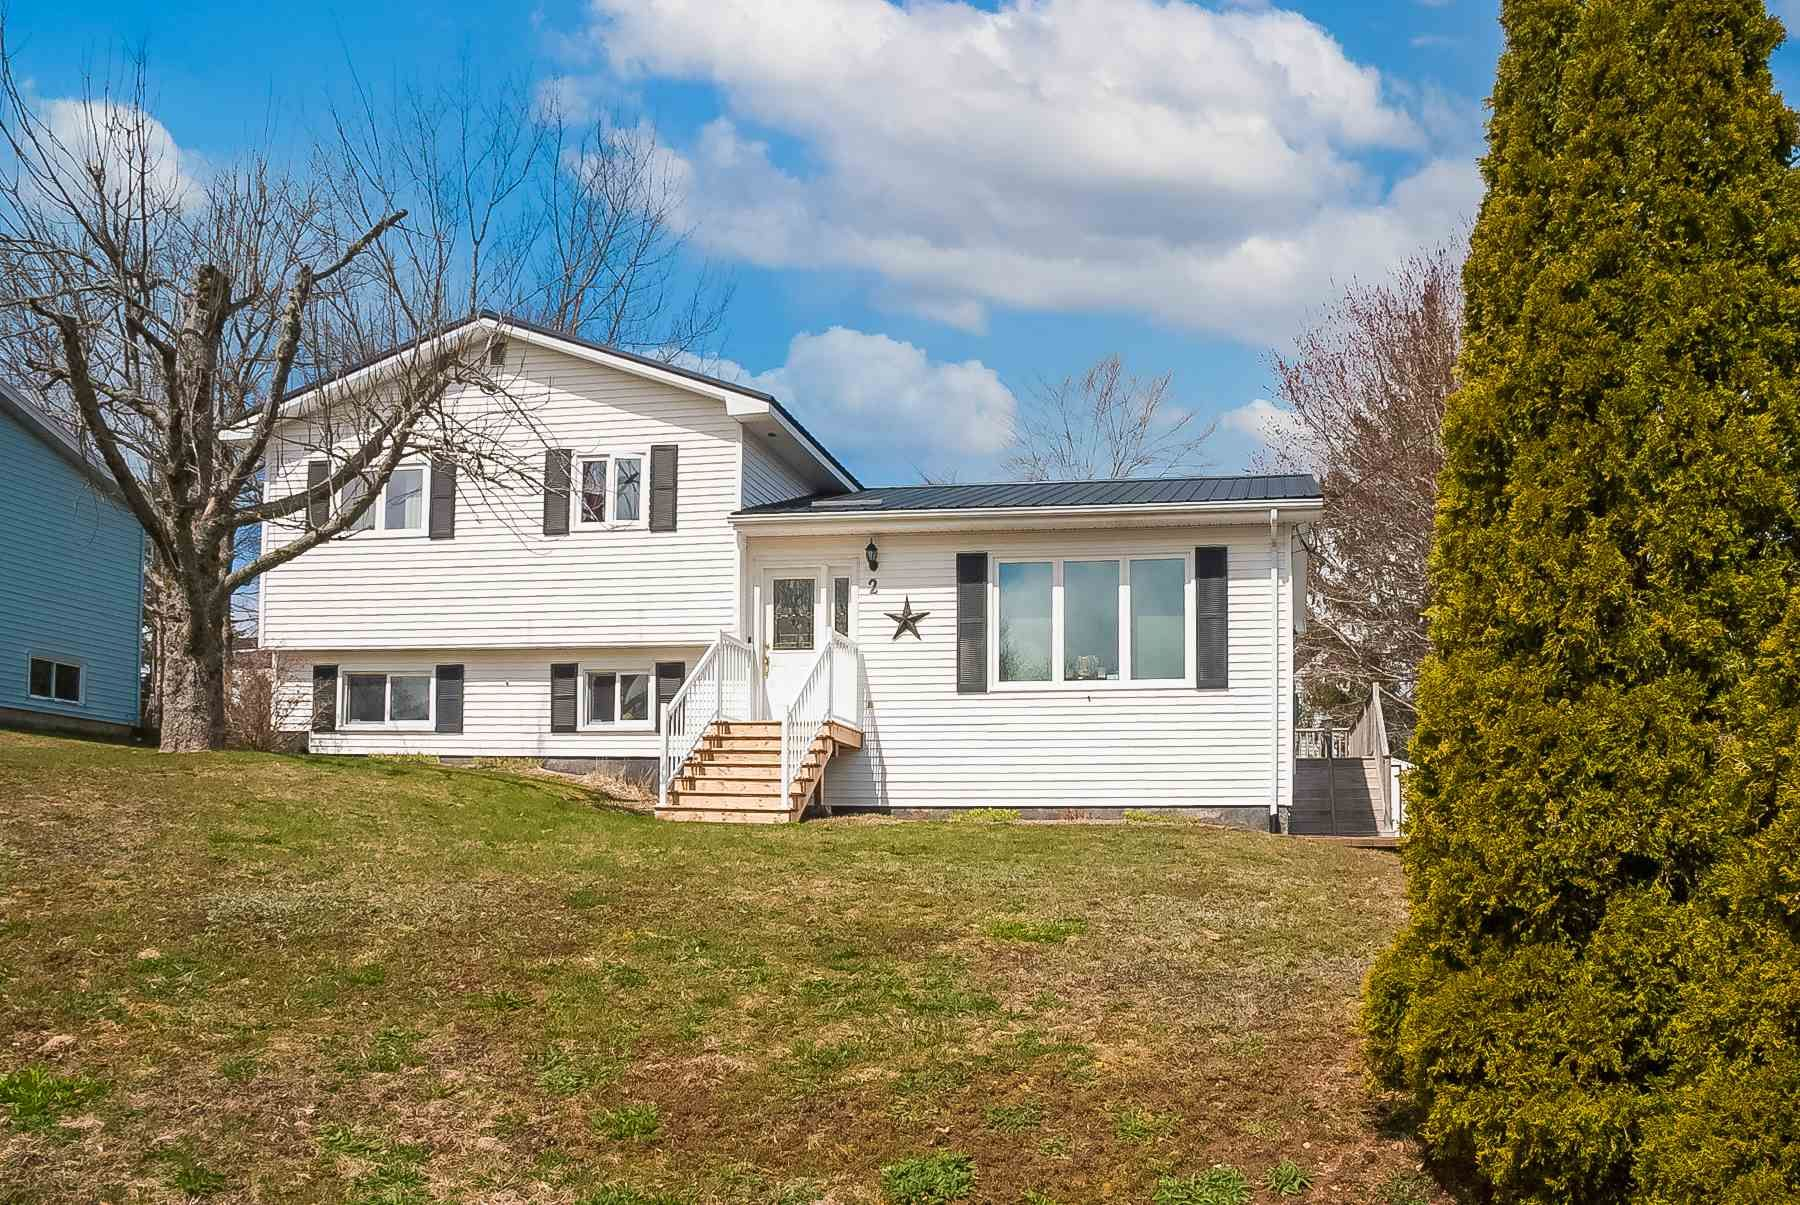 Main Photo: 2 Pinecrest Boulevard in Bridgewater: 405-Lunenburg County Residential for sale (South Shore)  : MLS®# 202109793